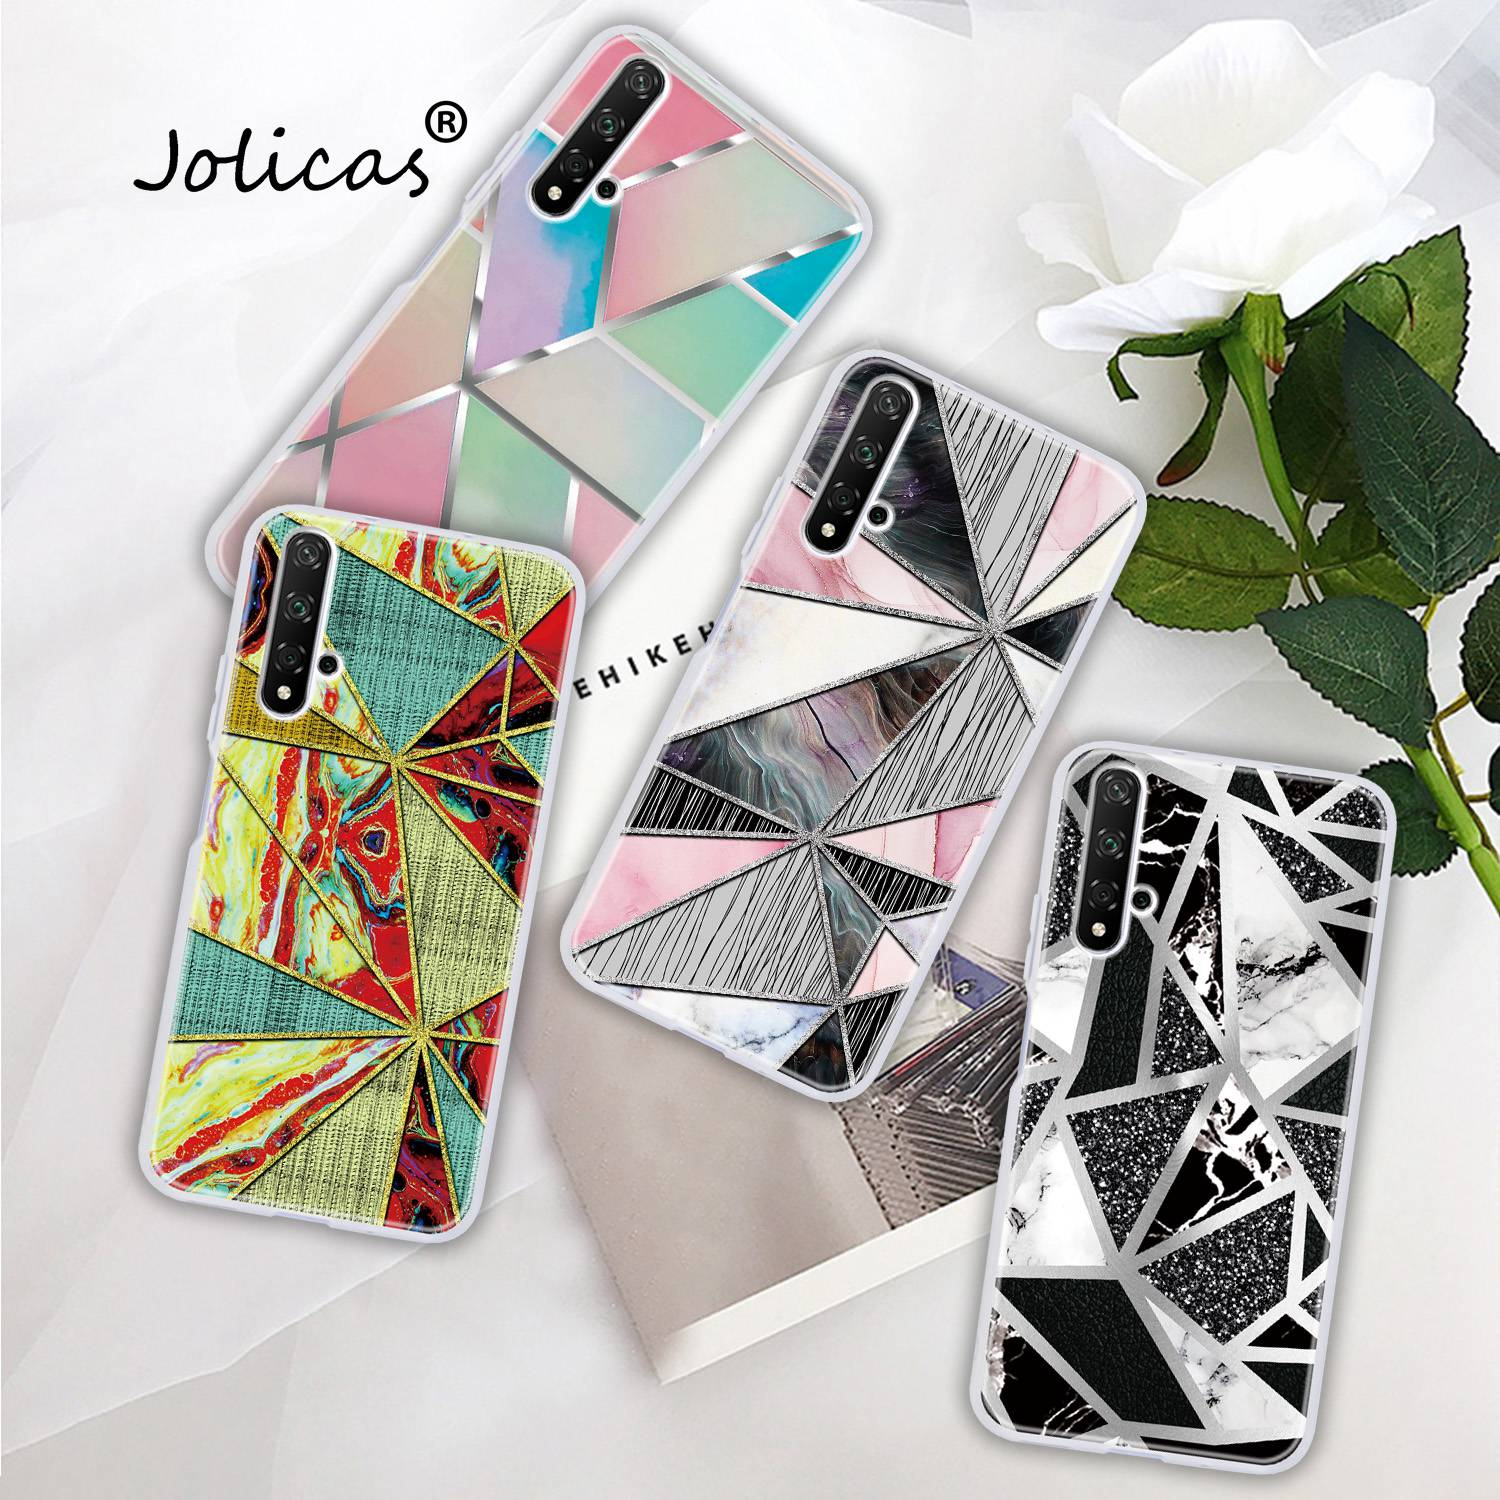 <font><b>Silicone</b></font> Cover For Huawei <font><b>Honor</b></font> 8X sFor Huawei etui <font><b>Honor</b></font> 20 9X Pro P Smart Plus 2019 7C <font><b>Case</b></font> 20i Lite <font><b>7S</b></font> 20S 10 8S Z 8A Fundas image